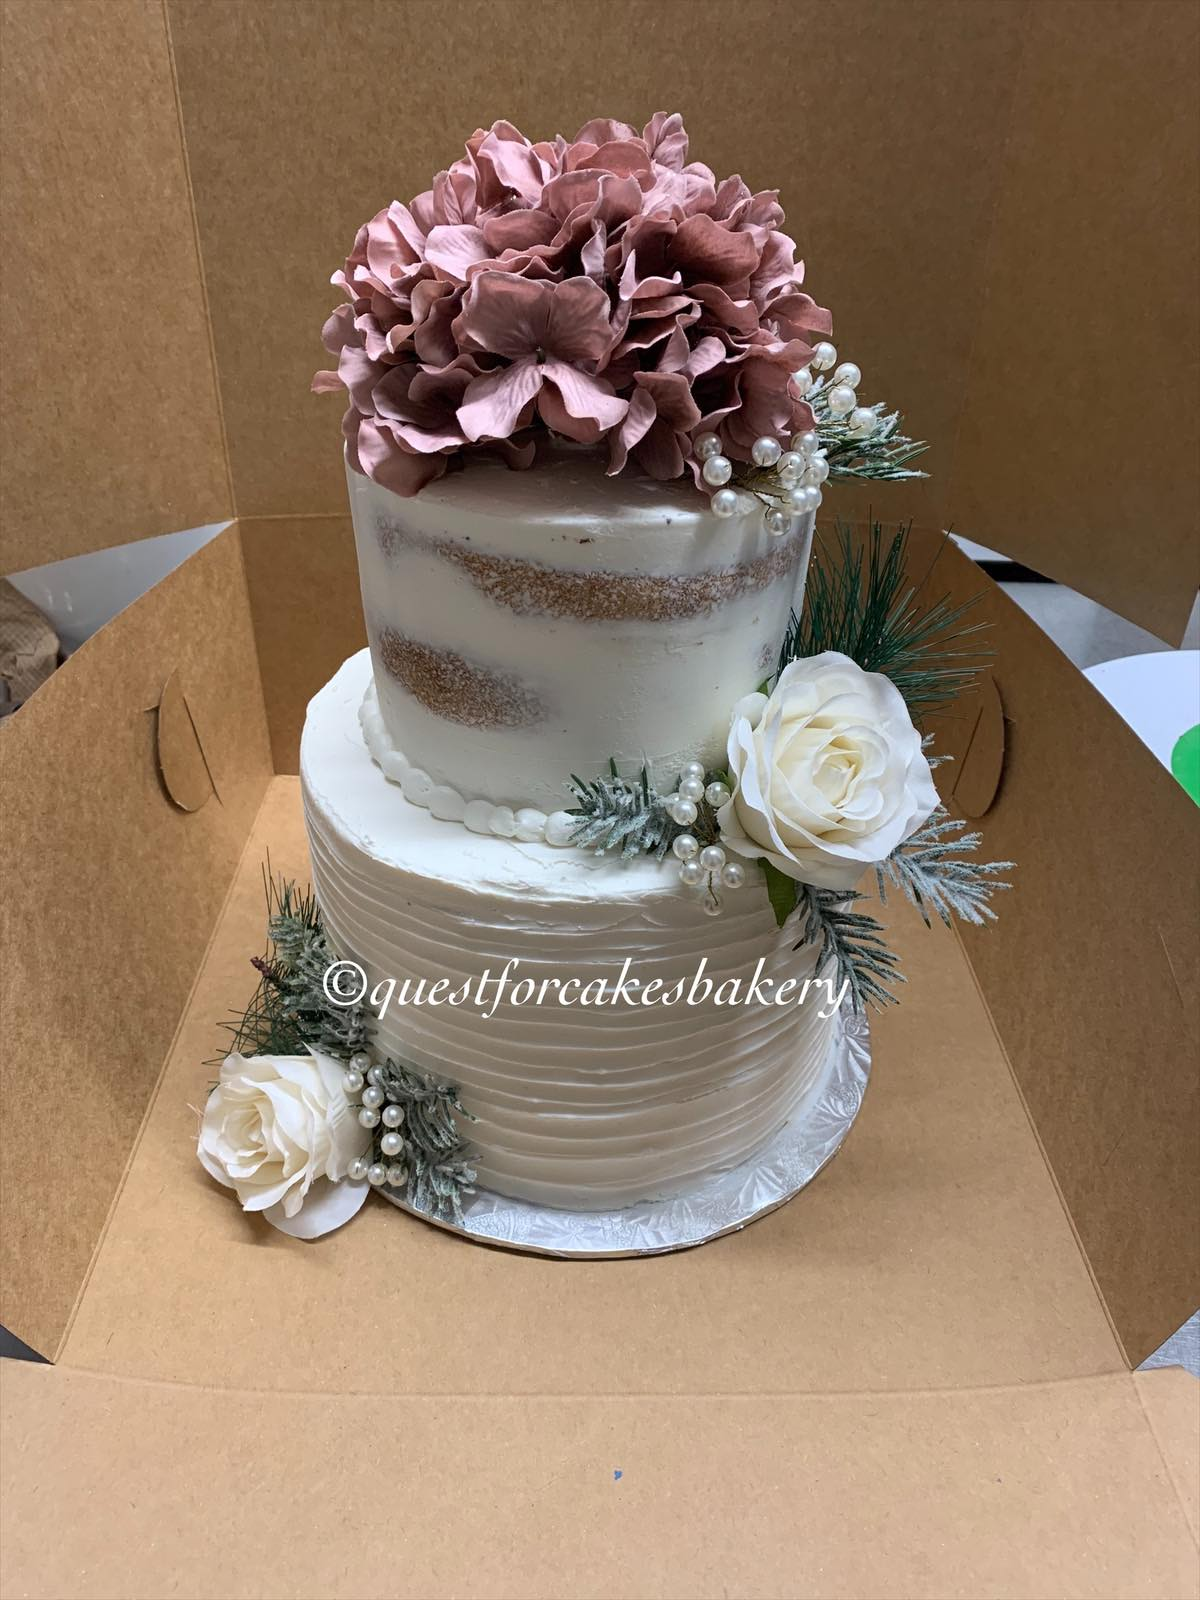 Wedding Cakes by Quest for Cakes Bakery